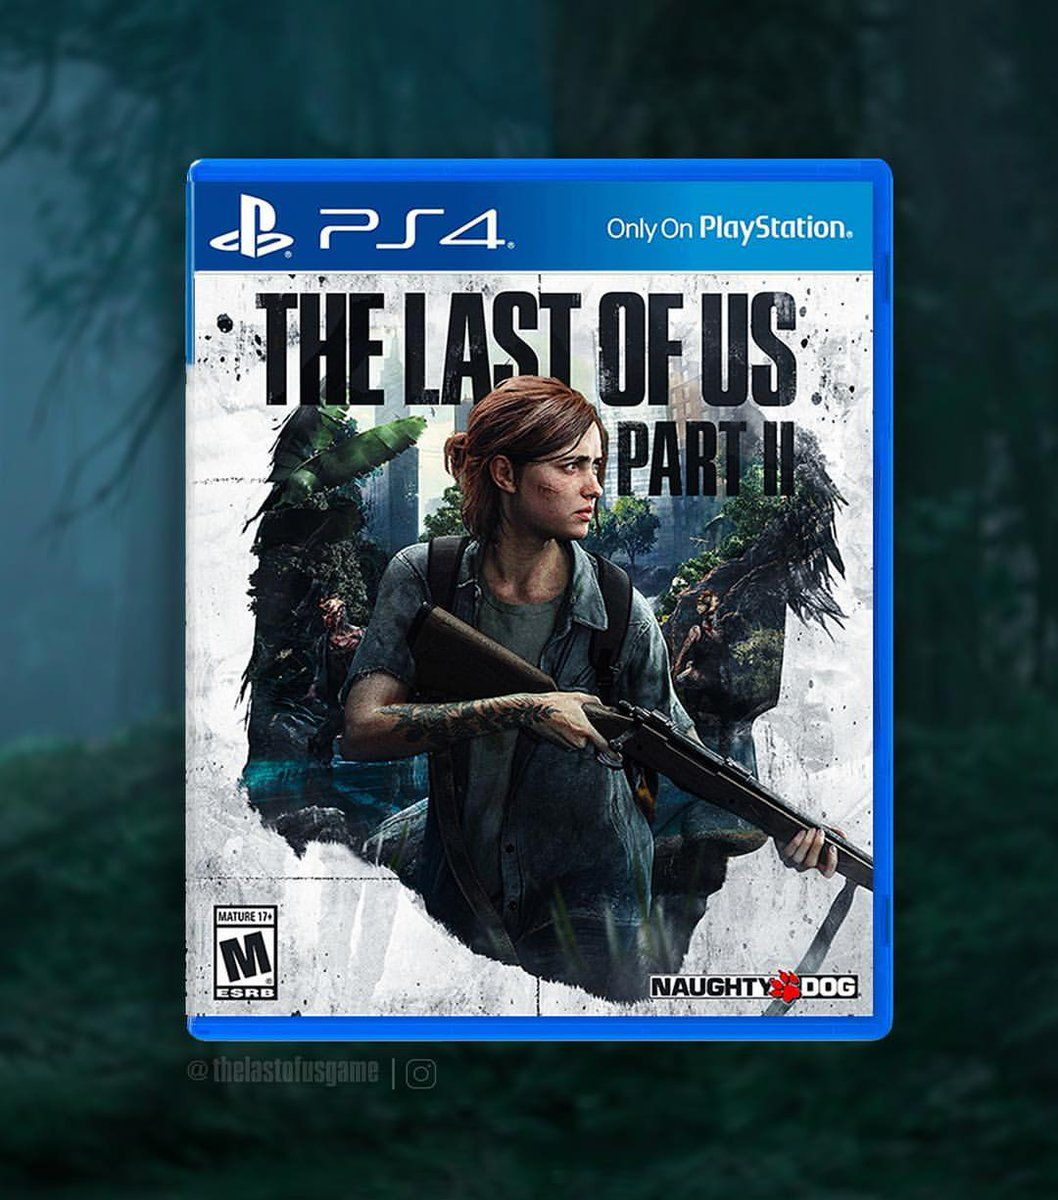 Concept For The Last Of Us Part Ii Ps4 Box Cover Art By Jpreet927 Coverart Not The Actual Final Box Cover Art